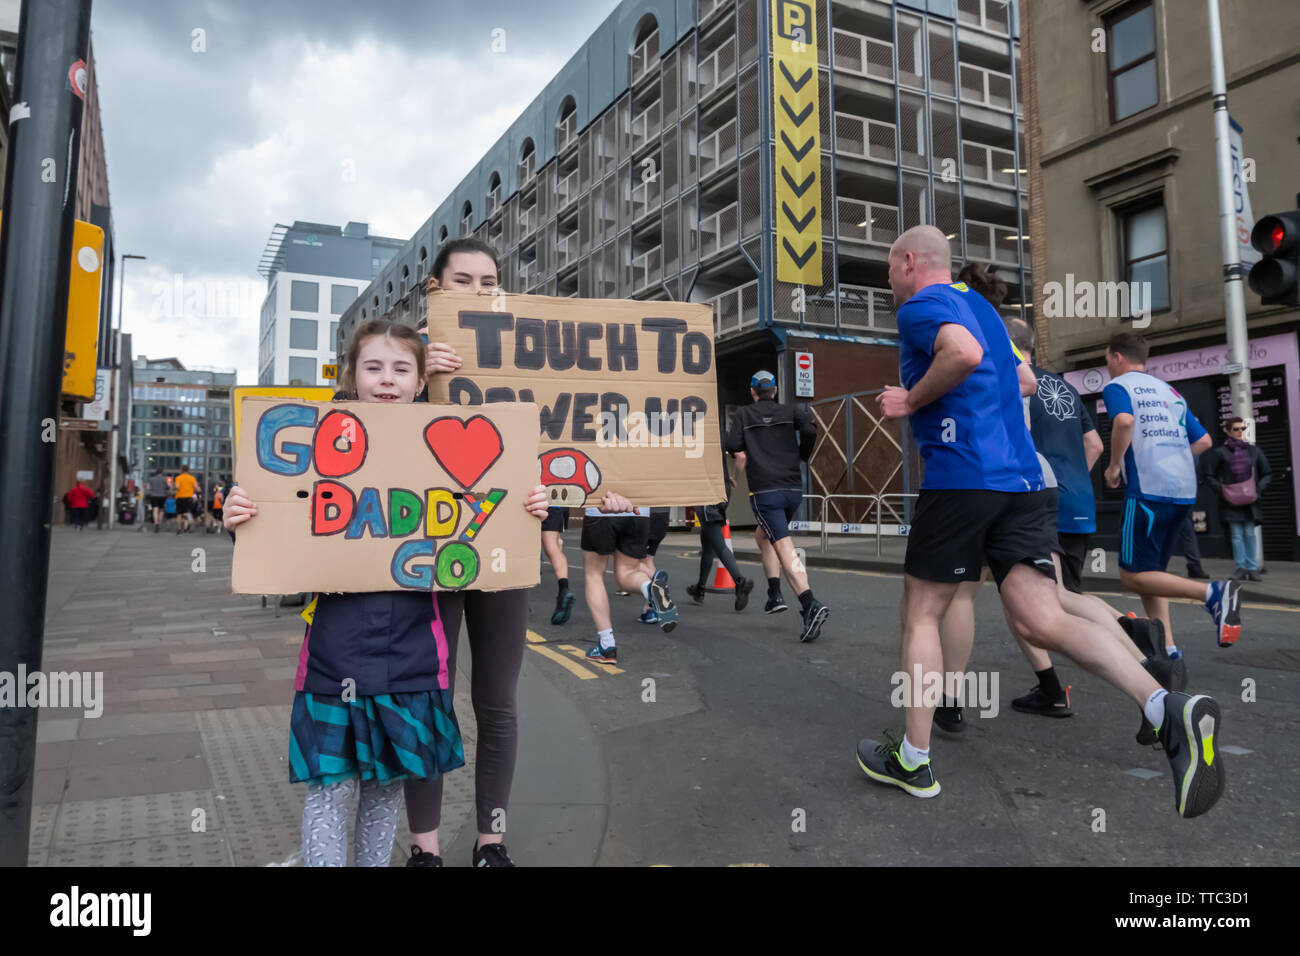 Glasgow, Scotland, UK. 16th June, 2019. Two girls holding placards that say Go Daddy Go and Touch To Power Up at the Men's 10K Run which has been an annual event since 2004. Thousands of runners take to the streets of the city to get fit, fundraise, and raise awareness of men's health issues. The run coincides with Fathers Day and starts at the Riverside Museum and  finishes at George Square. Credit: Skully/Alamy Live News - Stock Image